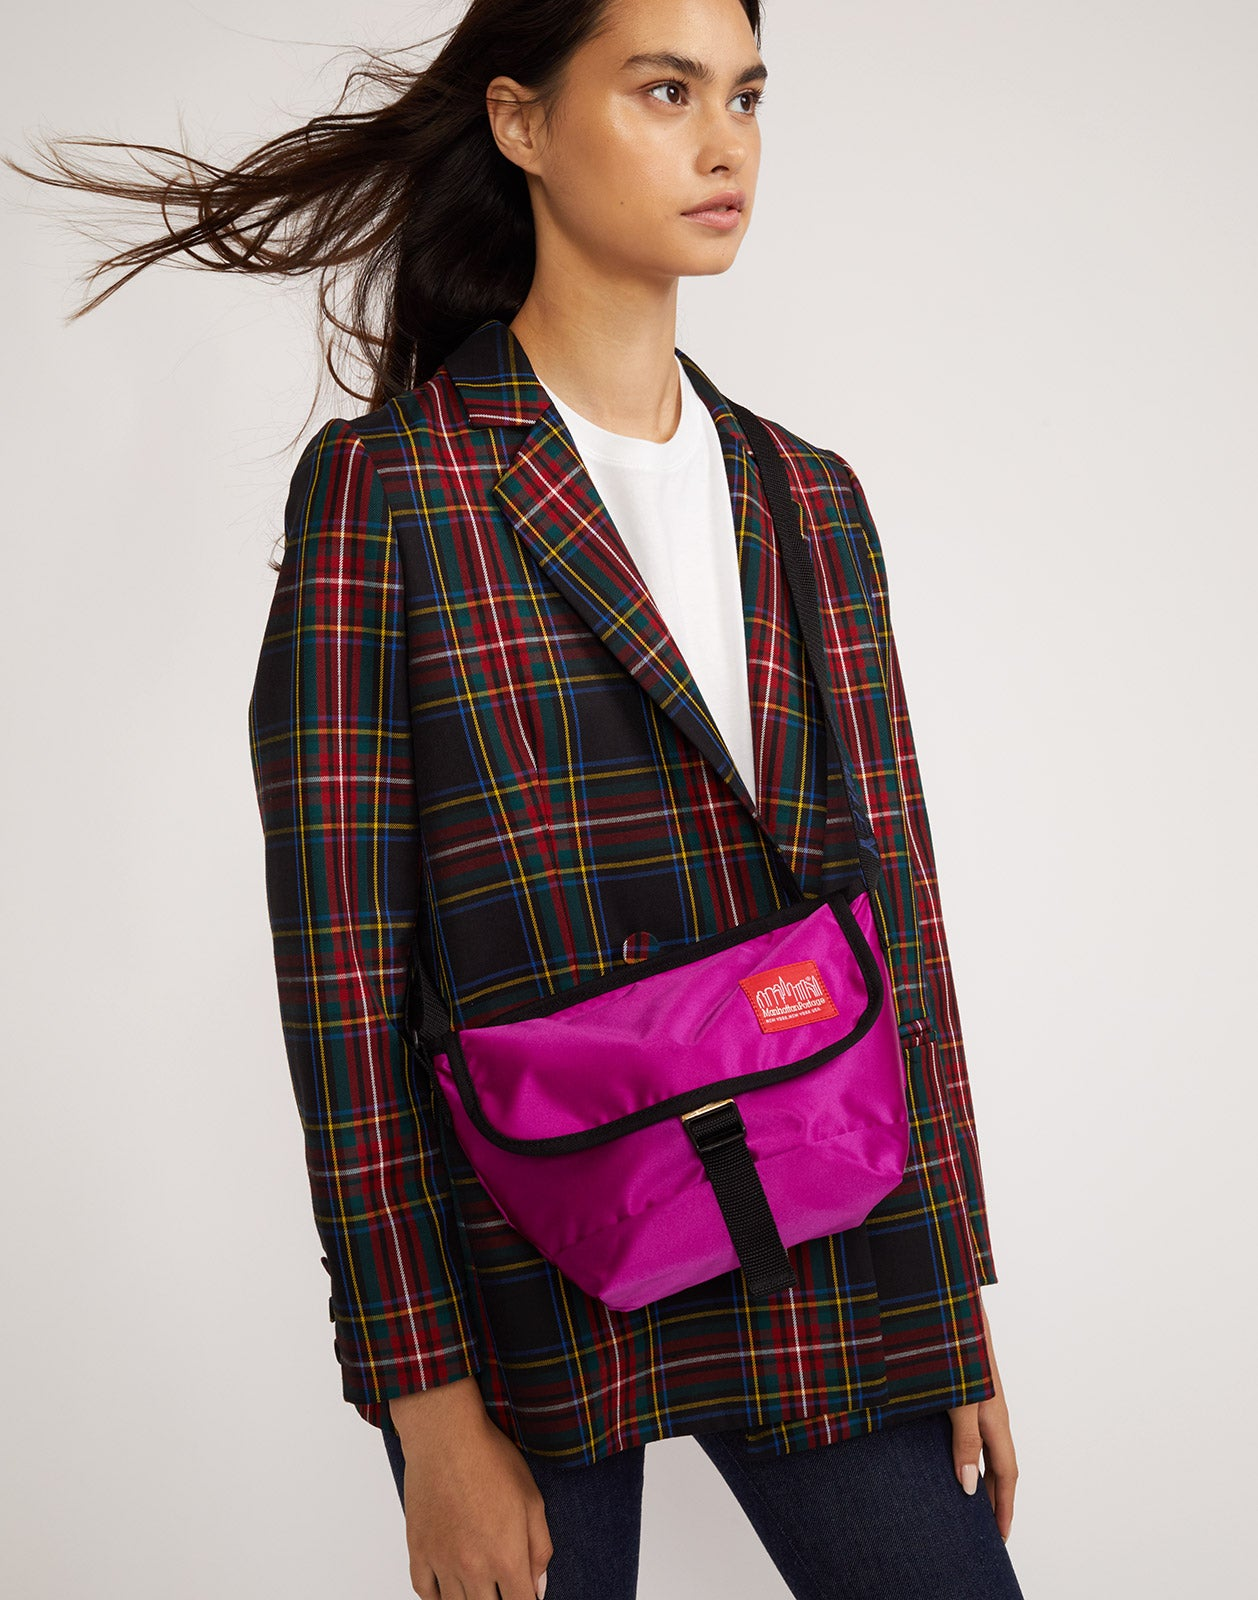 The Ridley plaid wool blazer worn with the Rowley x Manhattan Portage mini messenger bag.